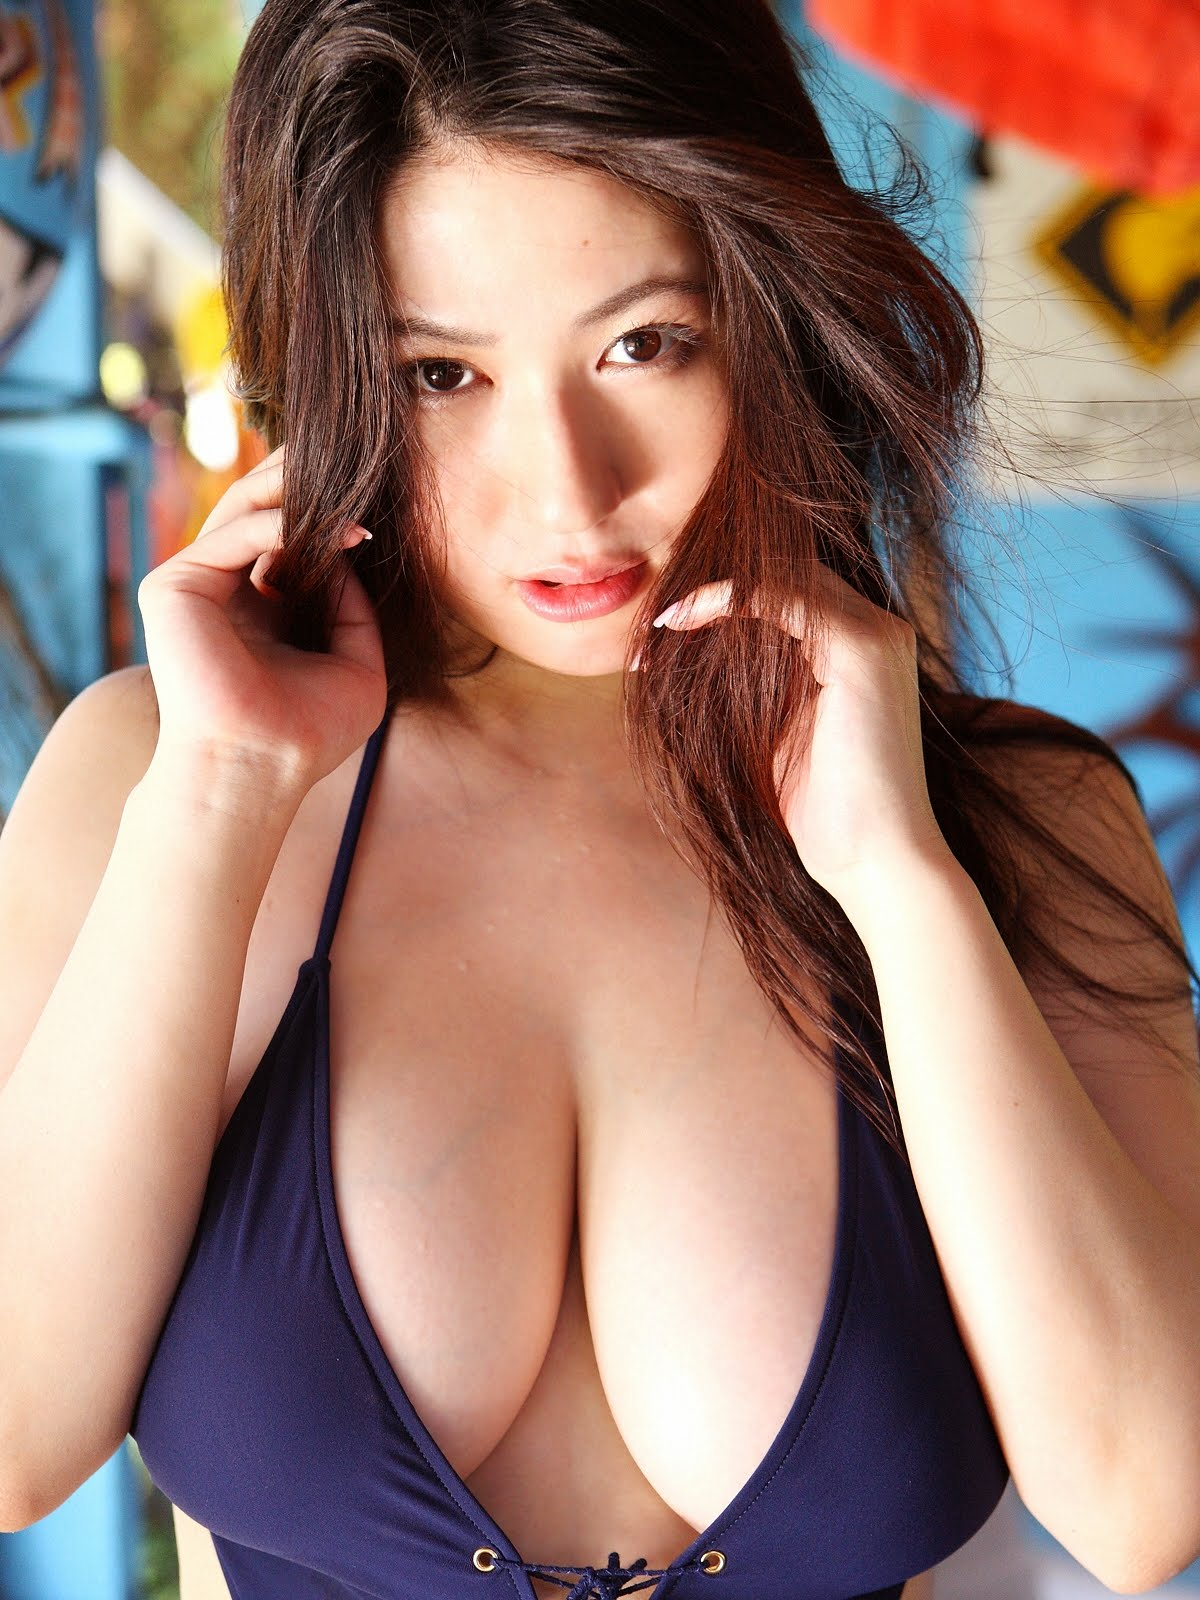 Love her blowjob eyes asian hotties pictures tag